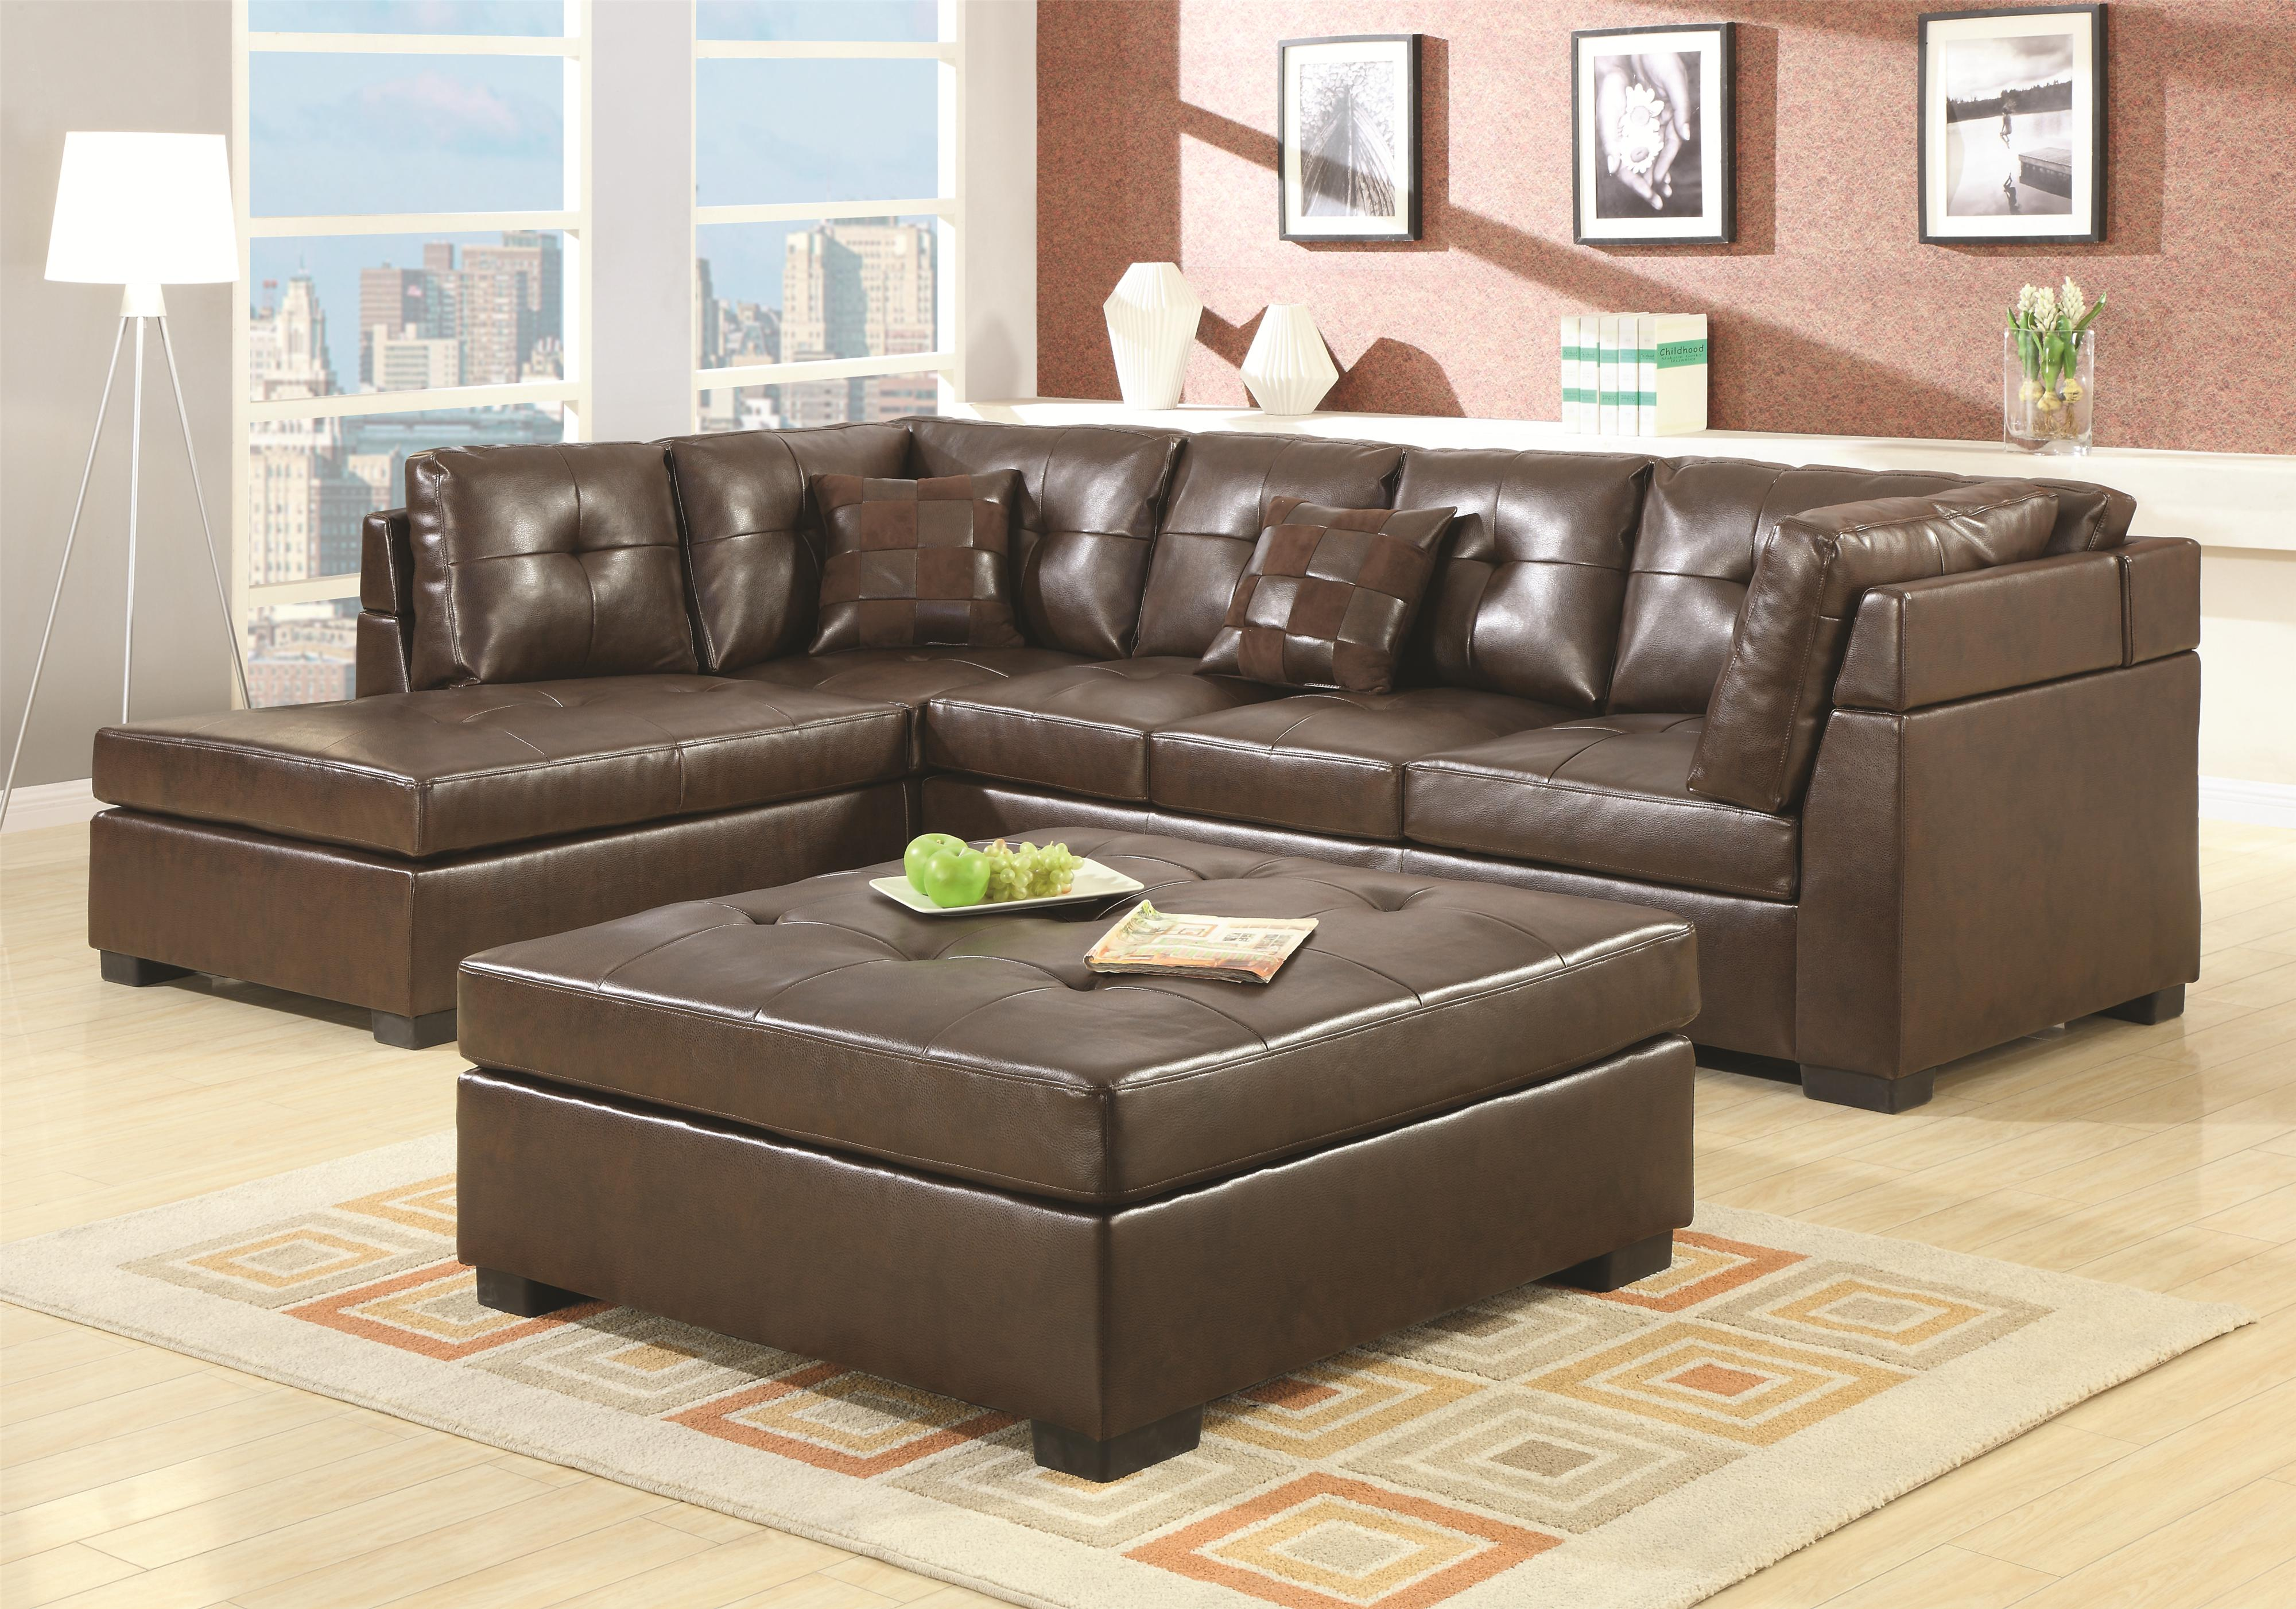 Darie Leather Sectional Sofa with Left Side Chaise 2